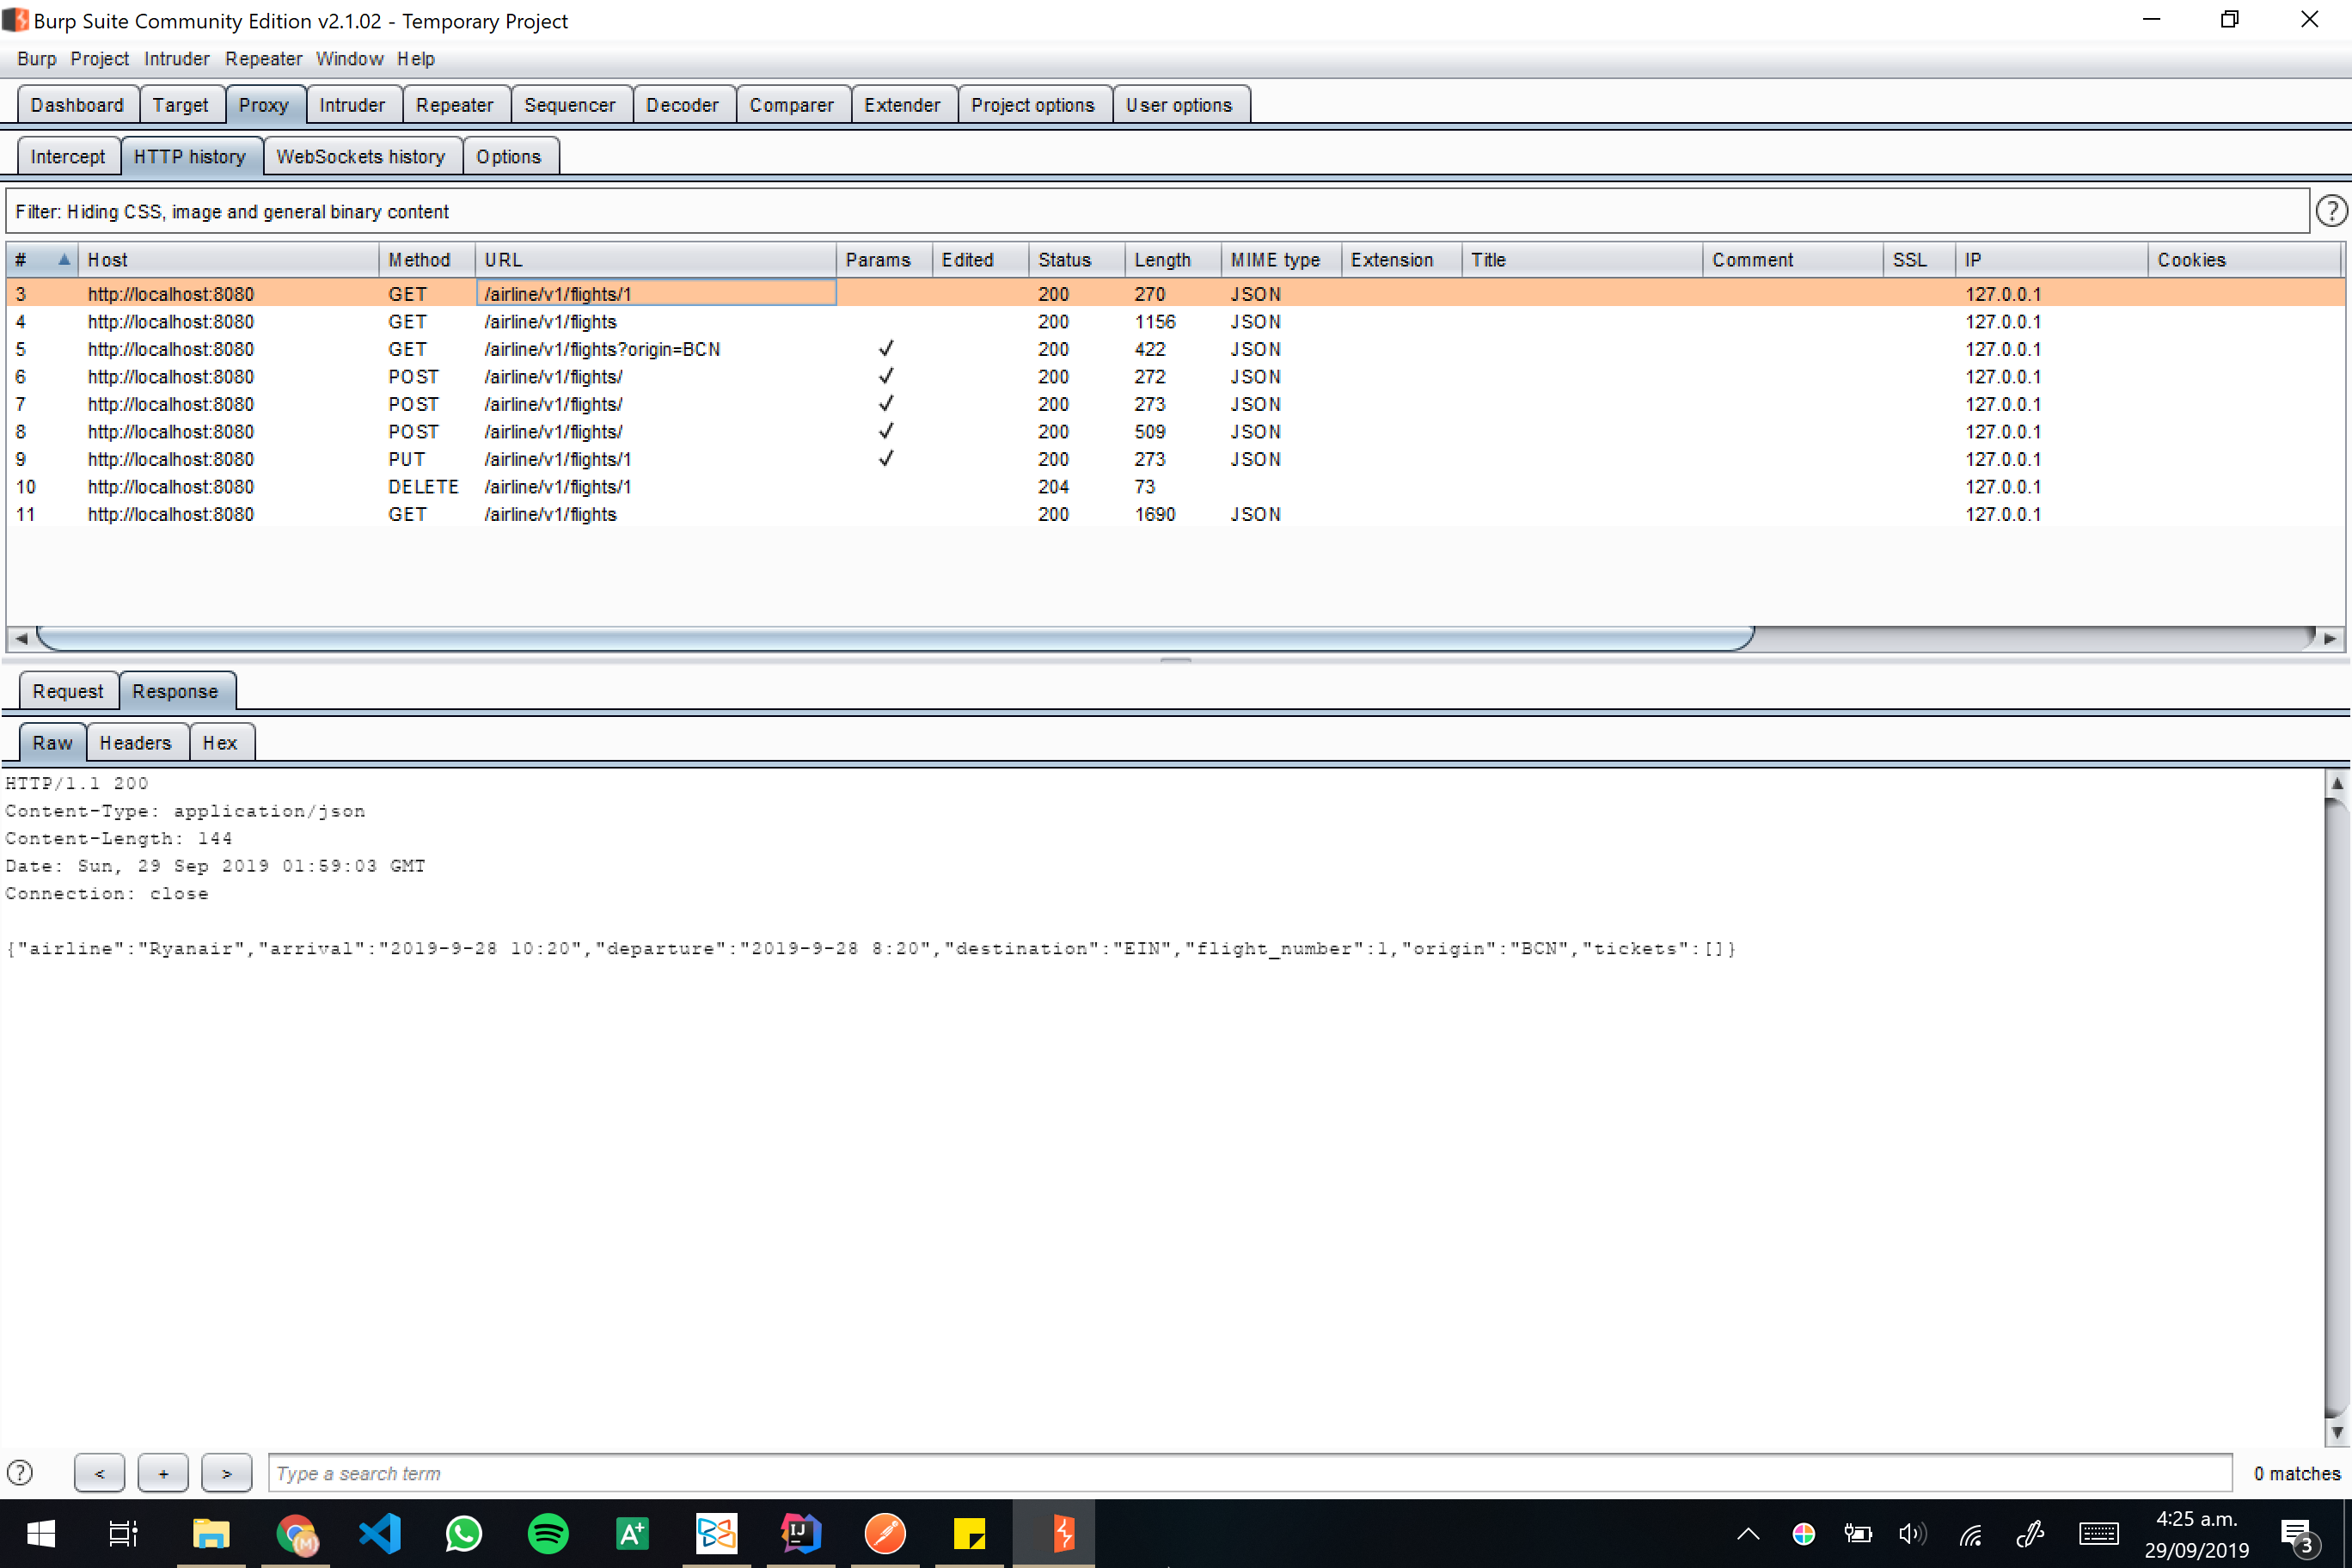 Burp screenshot 06